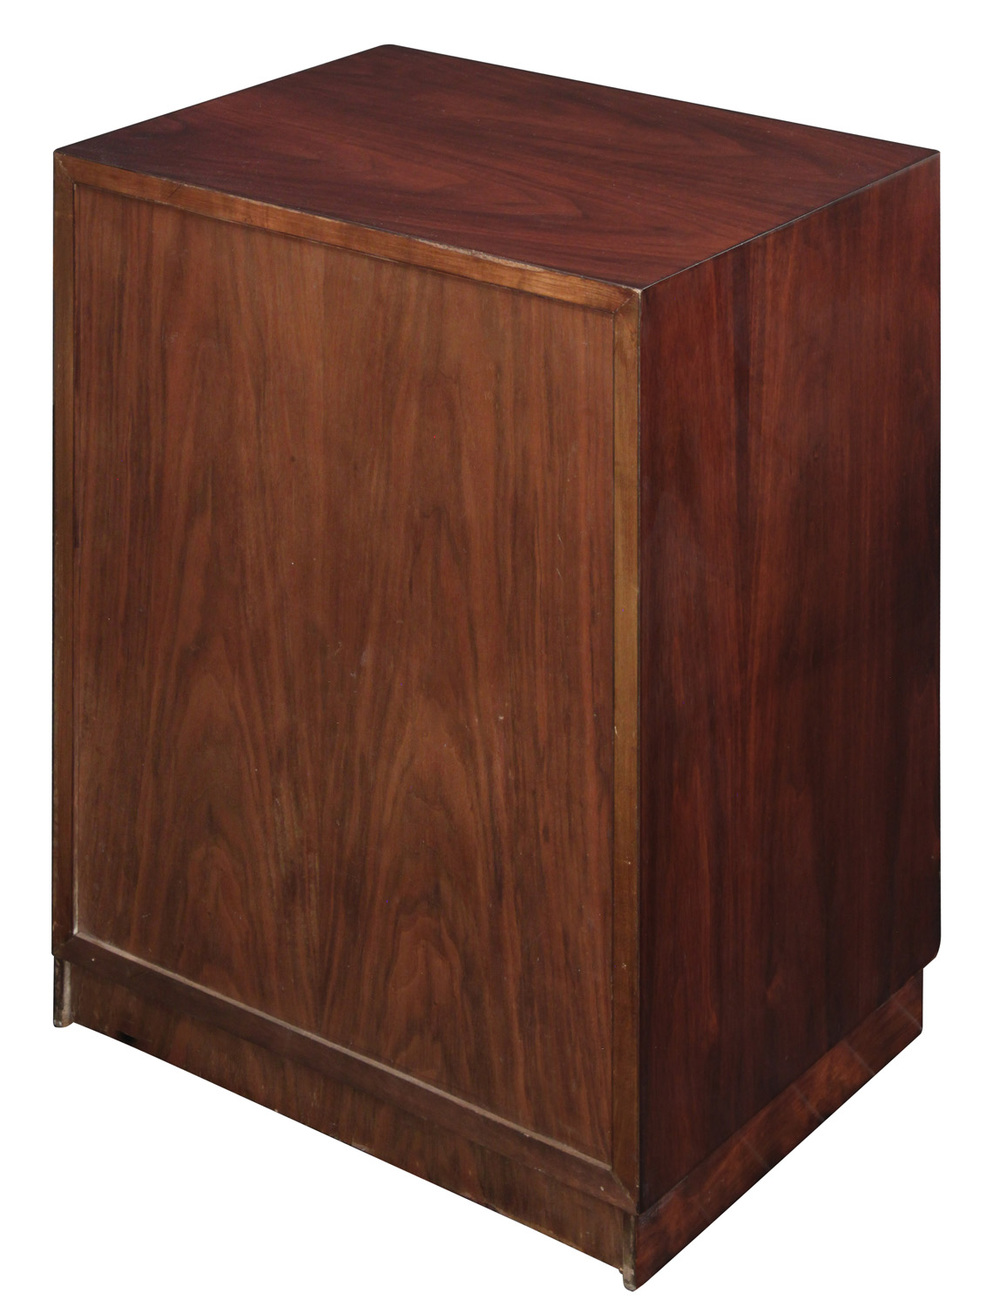 Gibbings 65 wlnt 1 drwer clean nightstands87 detail4 hires.jpg